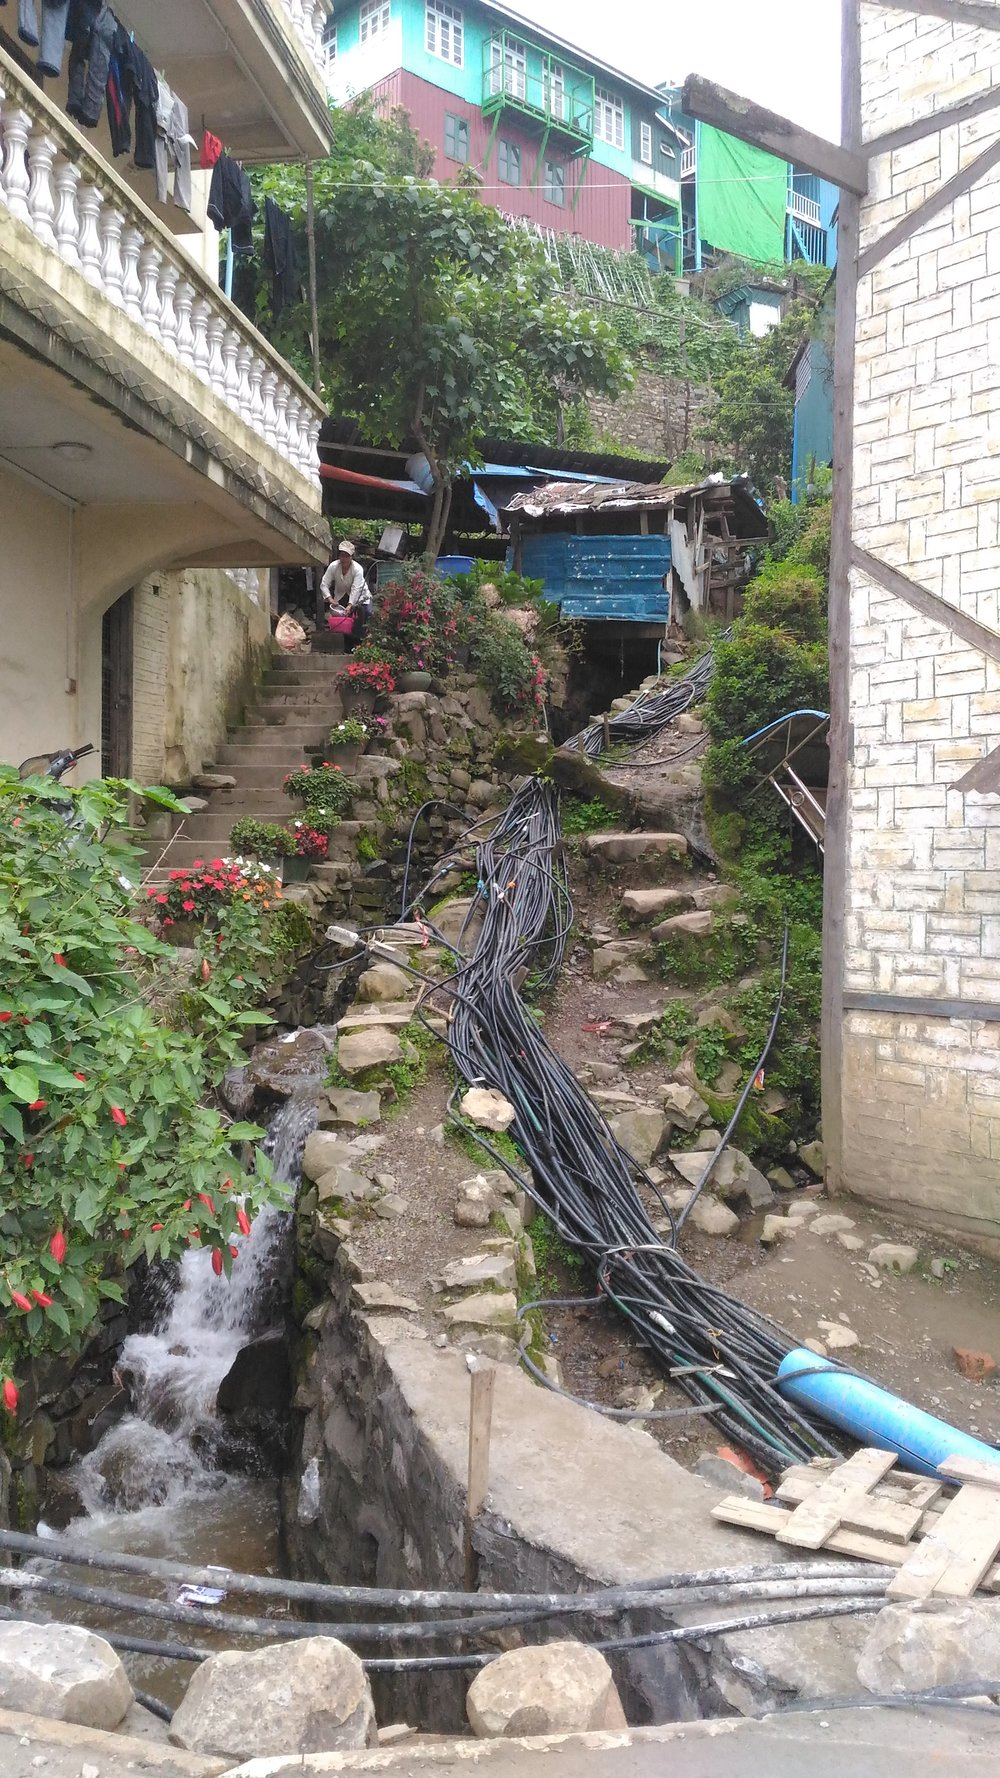 Tens of exposed and entangled pipes distribute water to individual houses